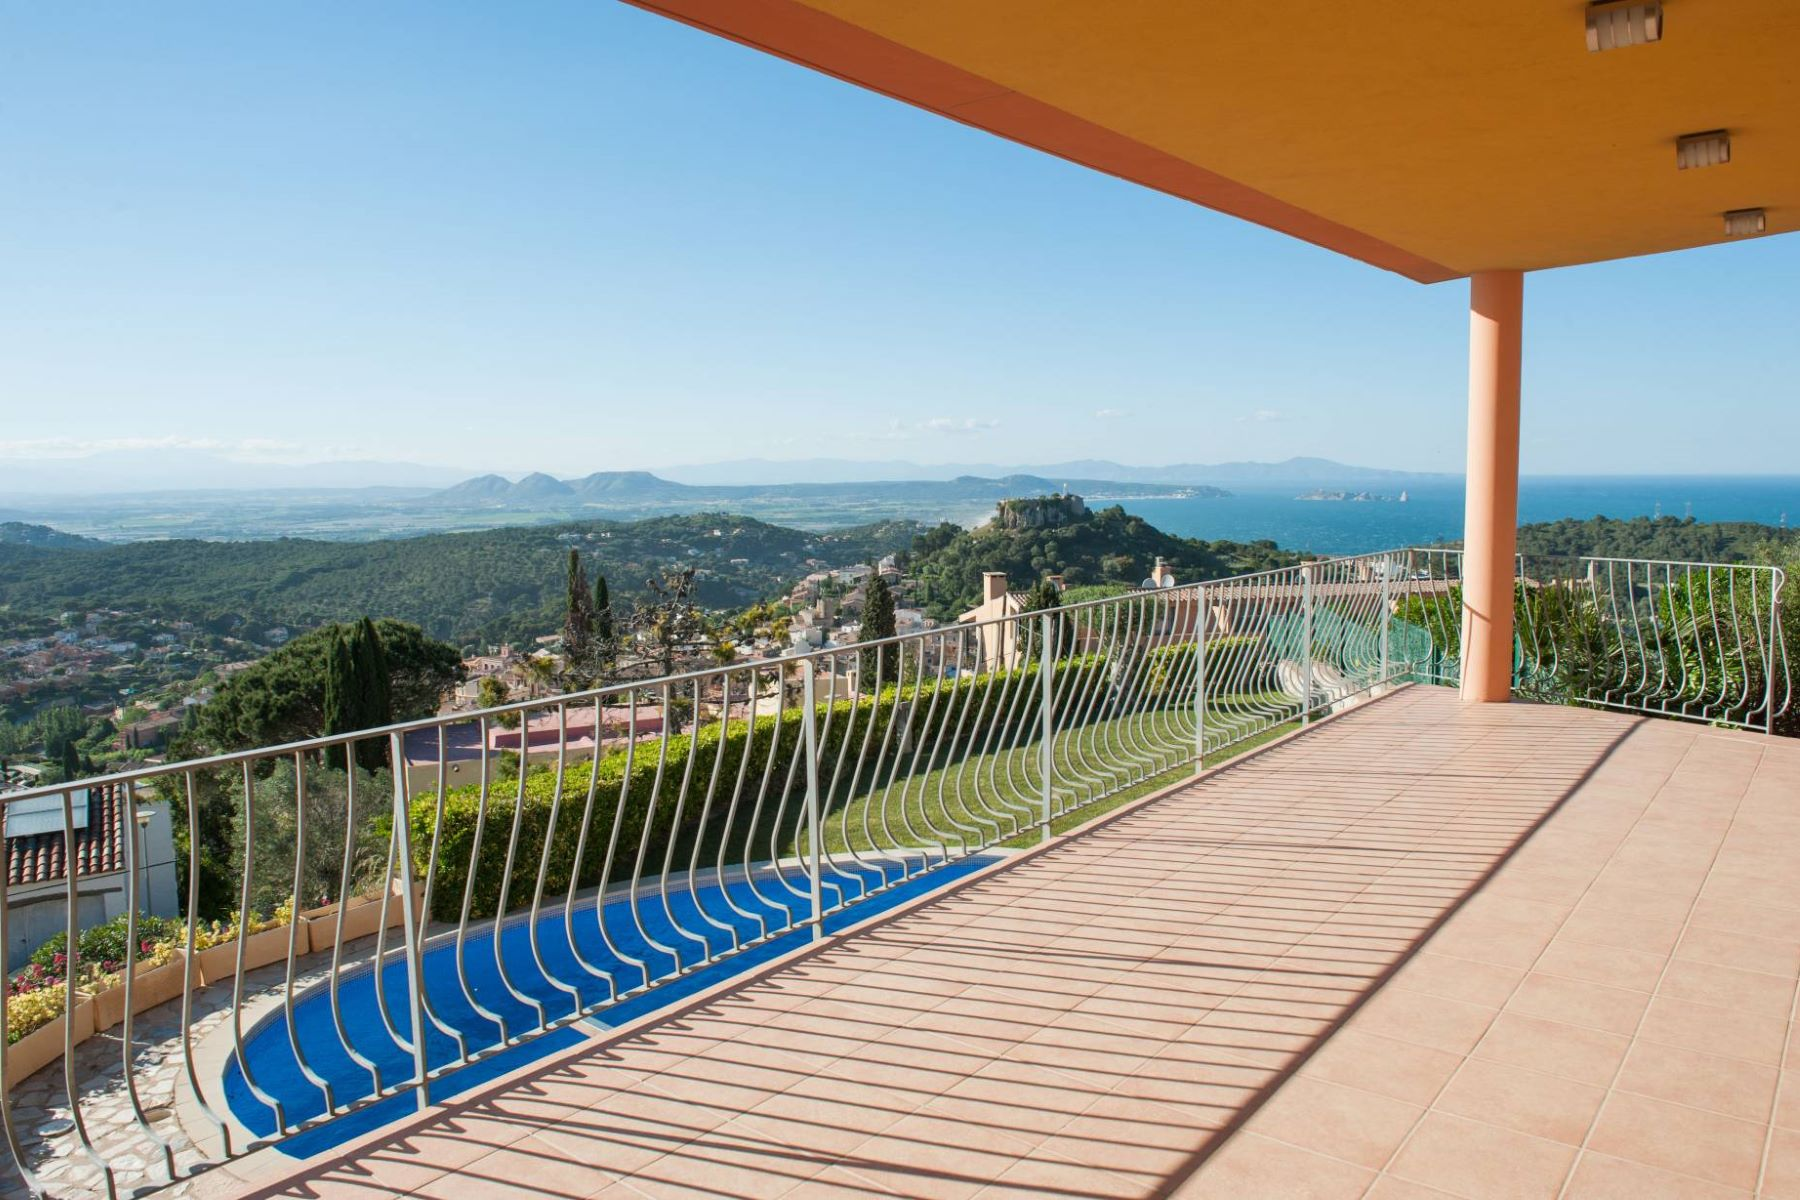 Single Family Home for Sale at Mediterranean house in the village with the best views in Begur Begur, Costa Brava, 17255 Spain